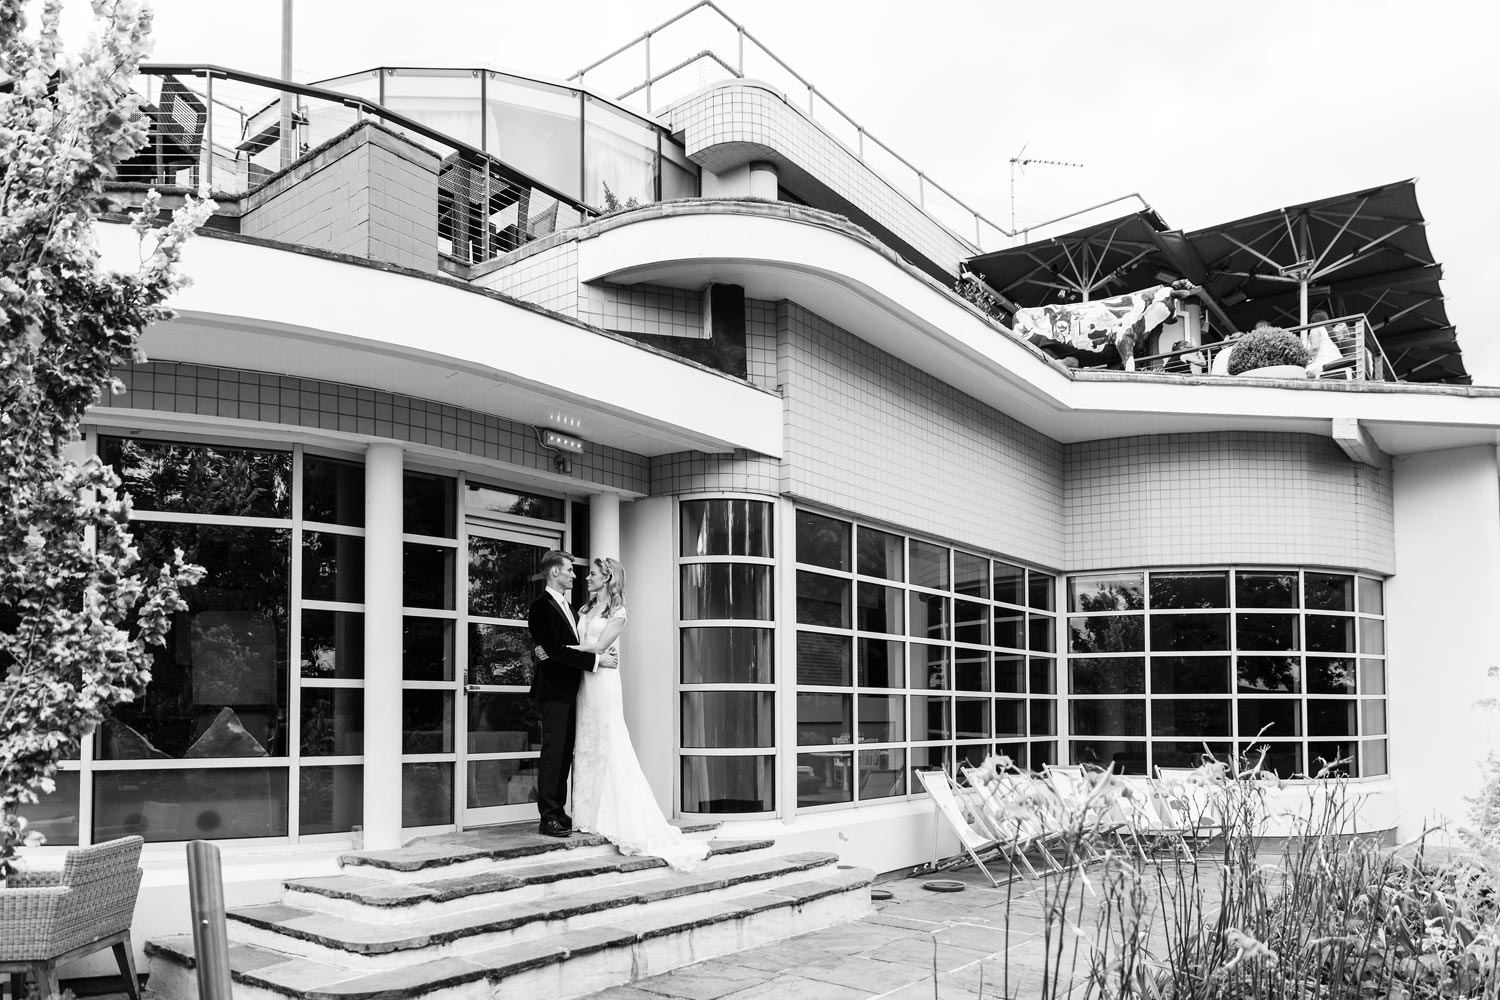 A couple poses for photographs at the Roof Gardens in Kensington - London wedding photographer